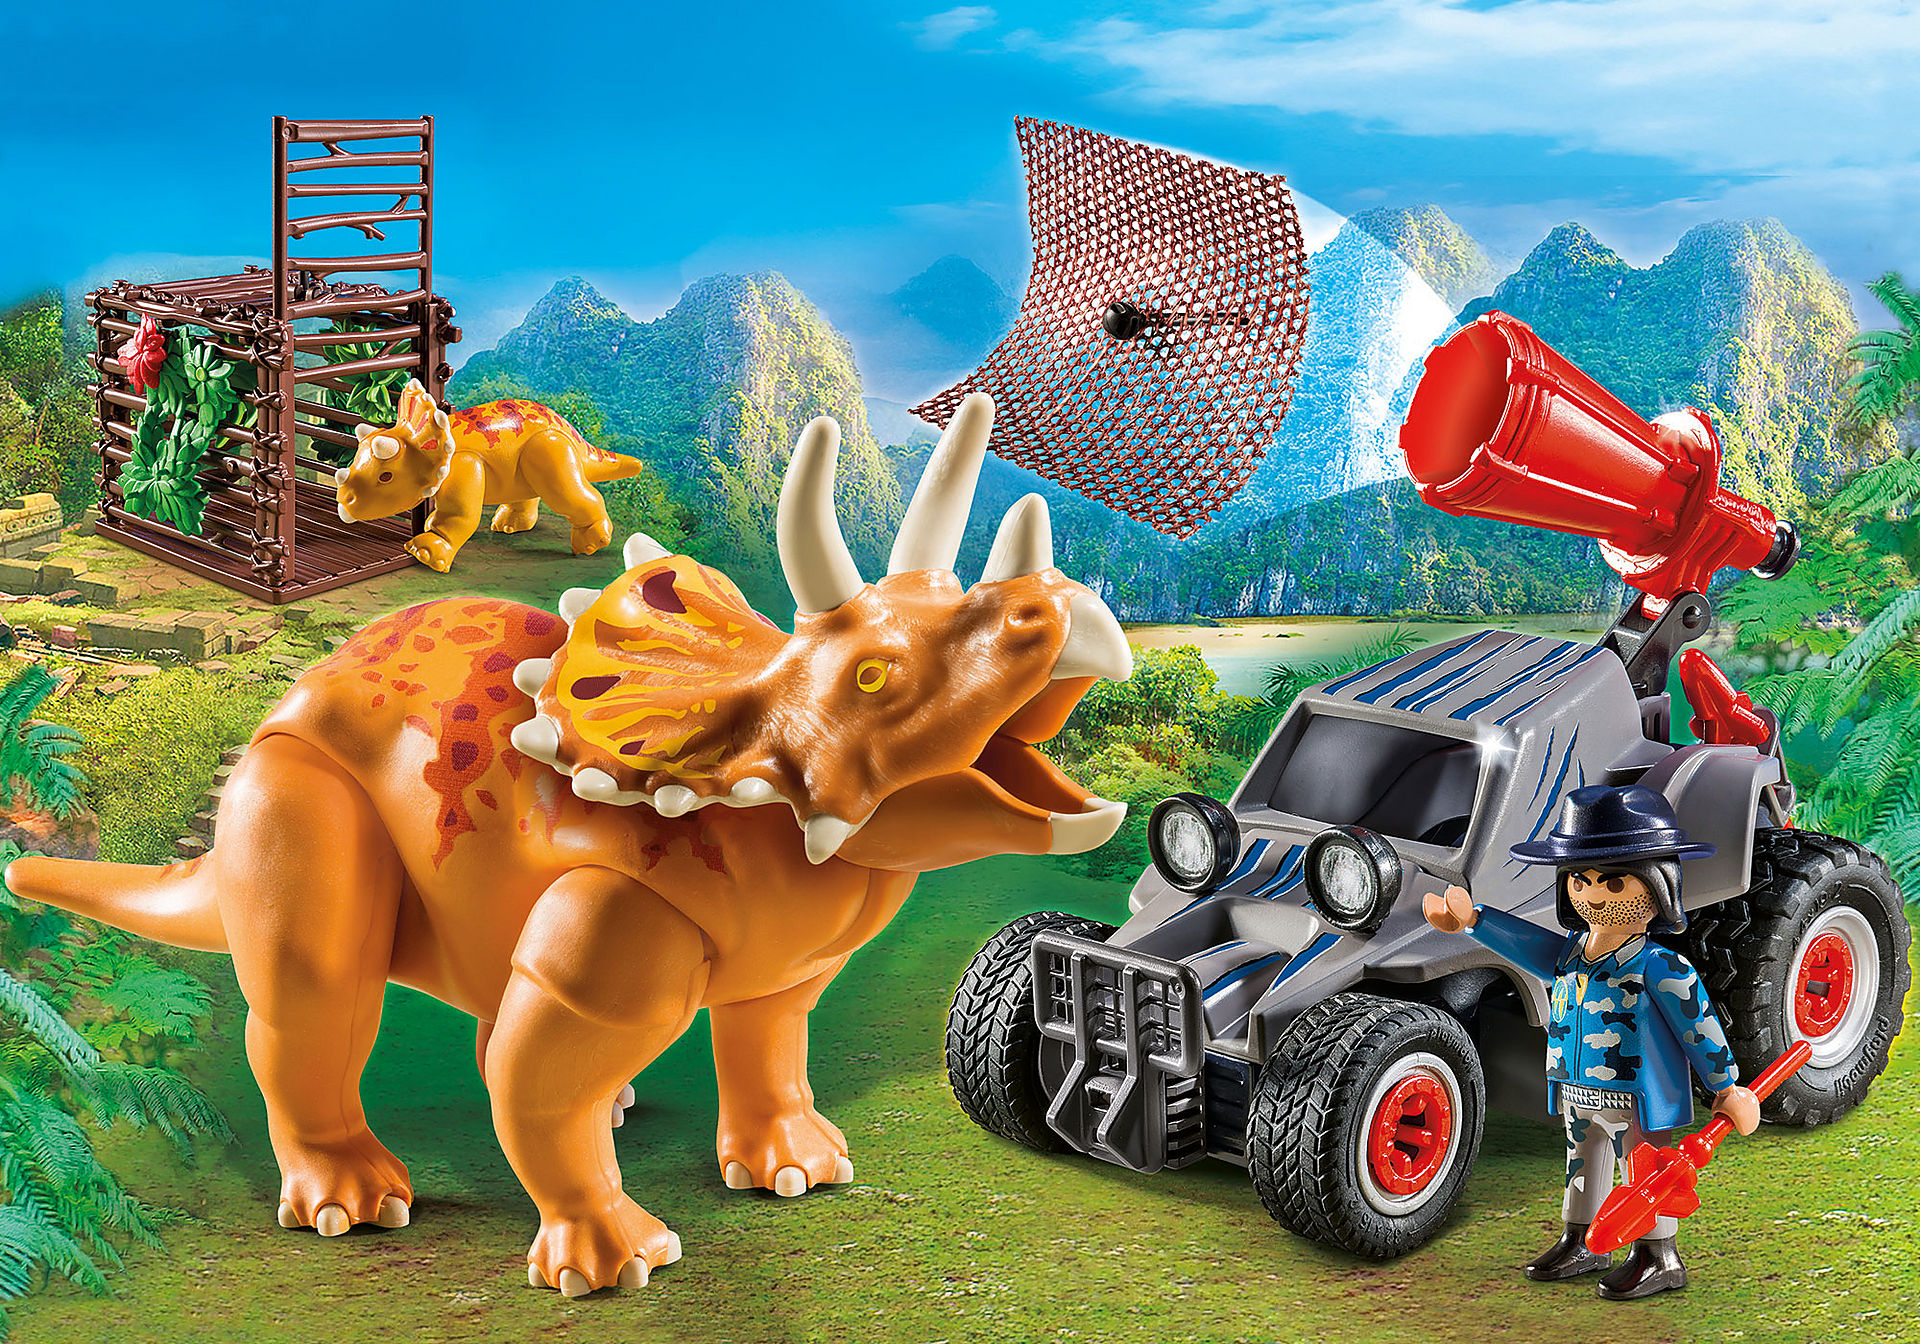 http://media.playmobil.com/i/playmobil/9434_product_detail/Offroader mit Dino-Fangnetz